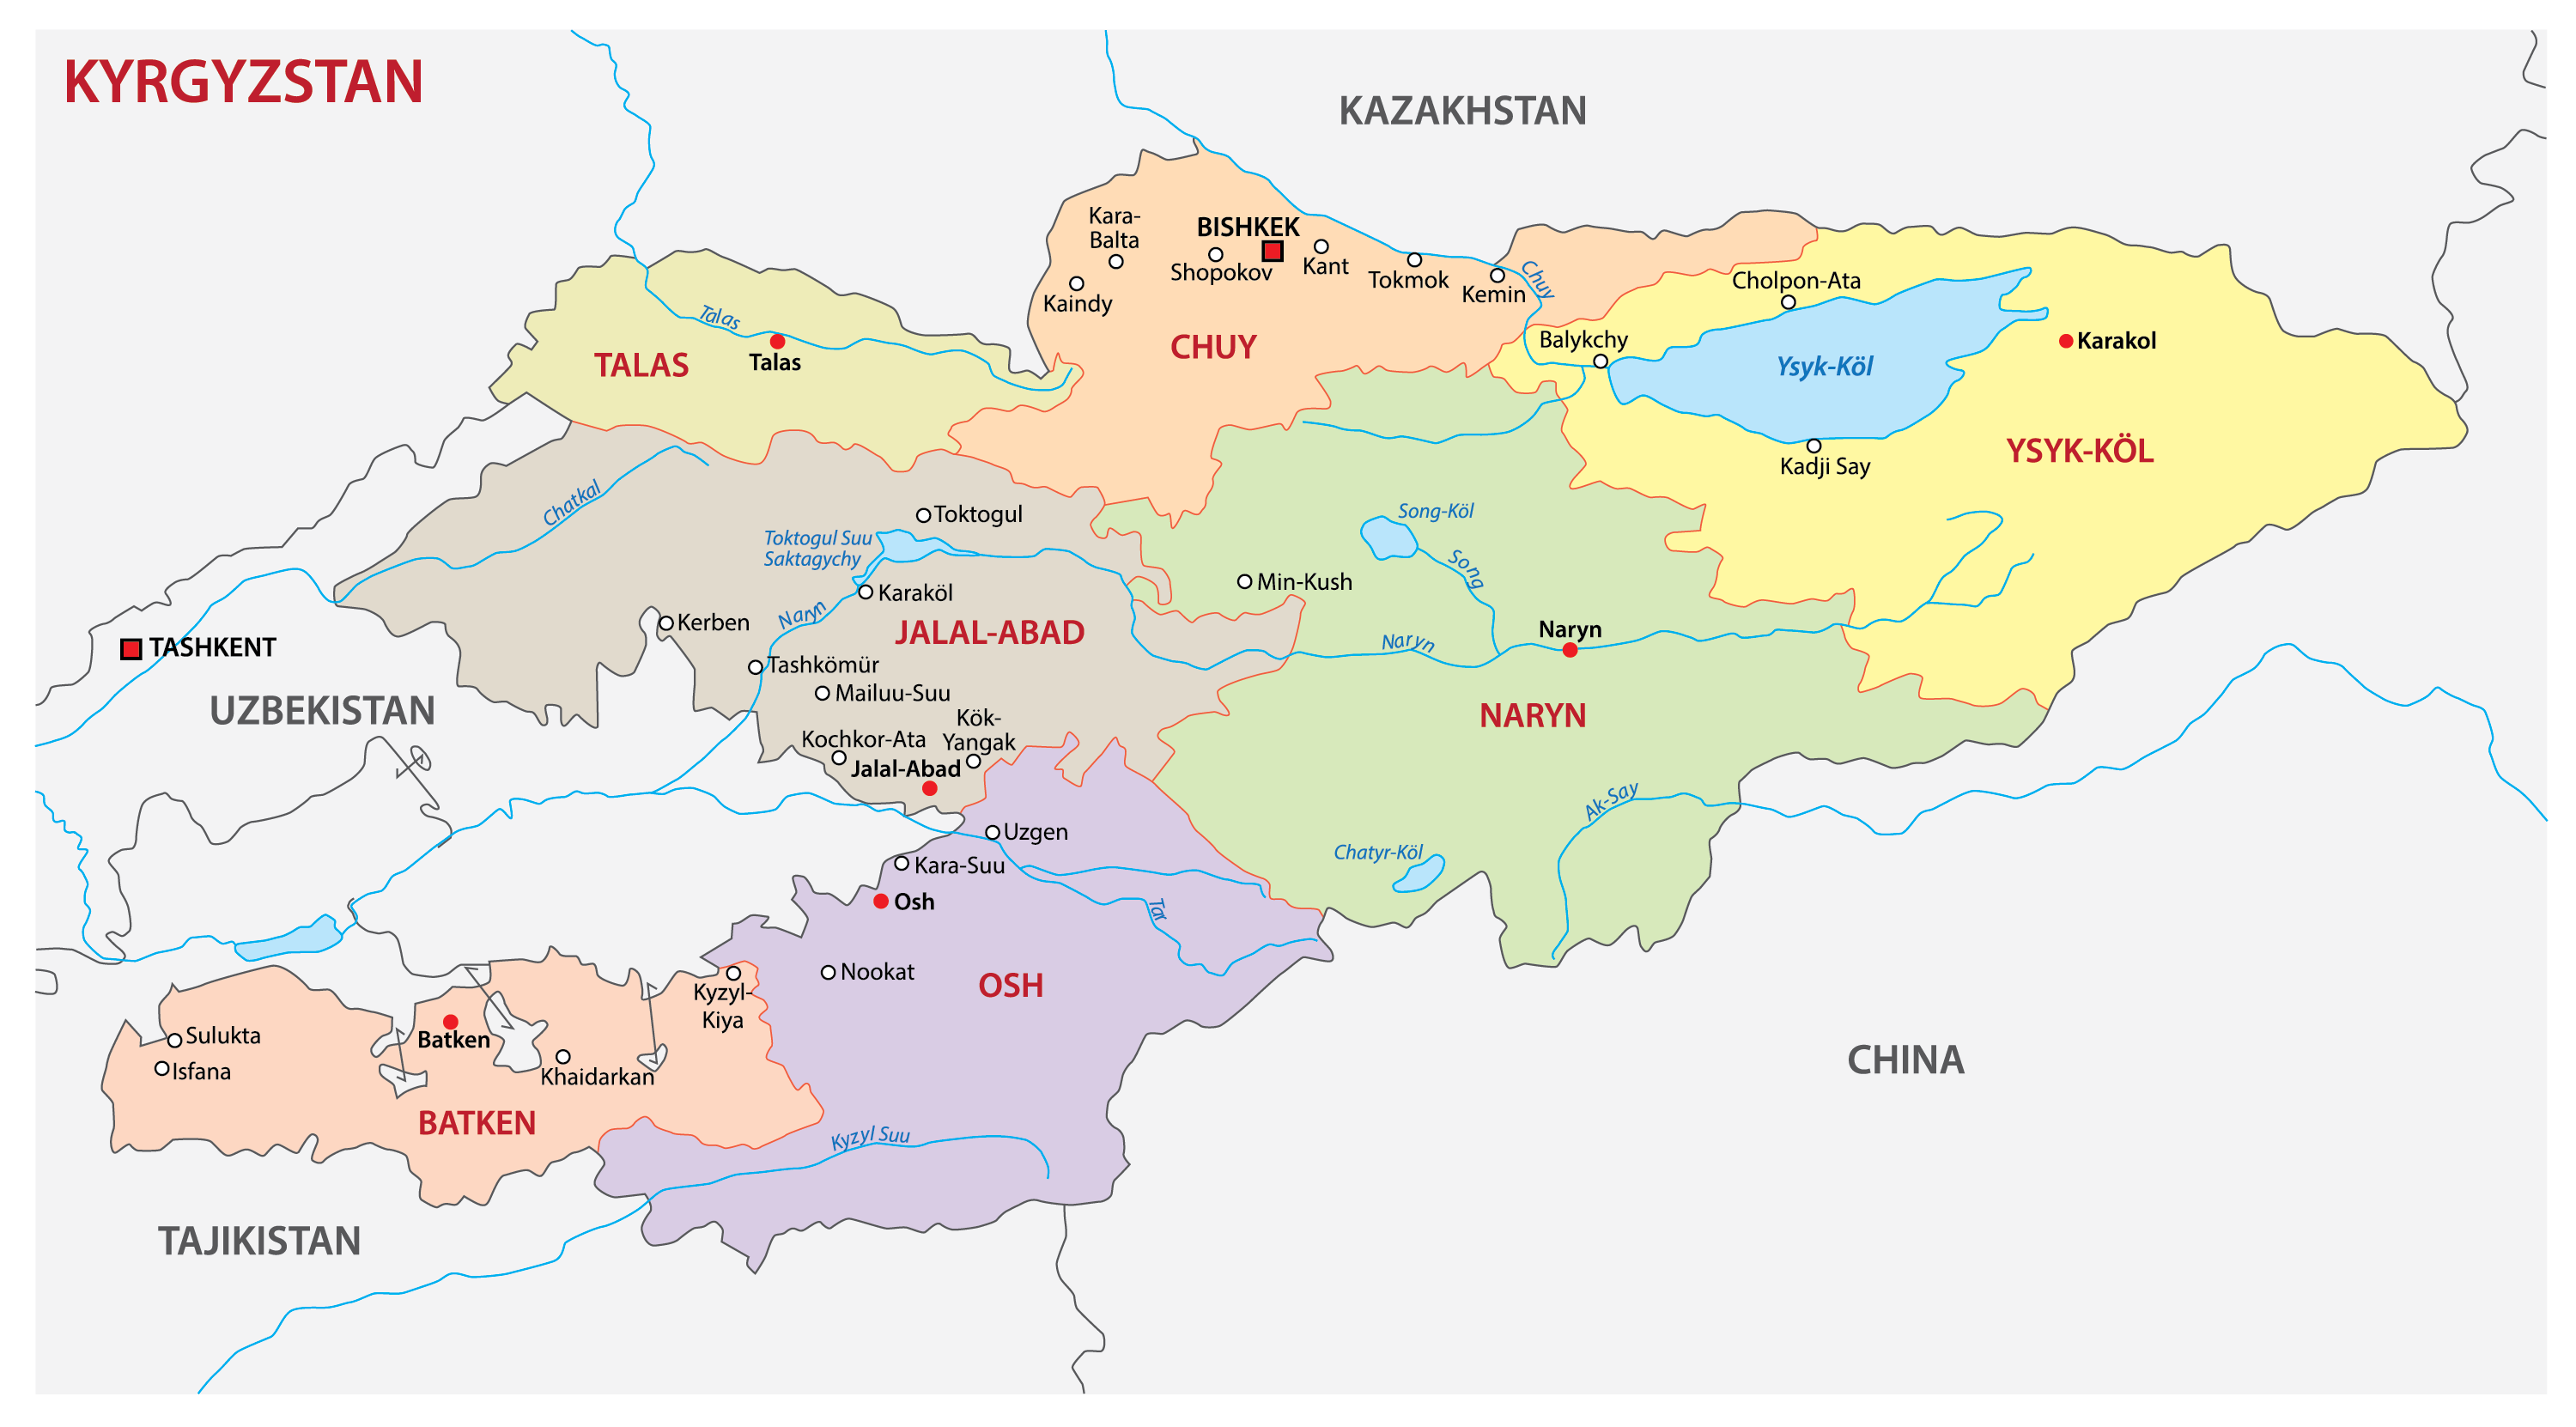 Political Map of Kyrgyzstan showing the 7 regions, their capital cities, and the national capital of Bishkek.